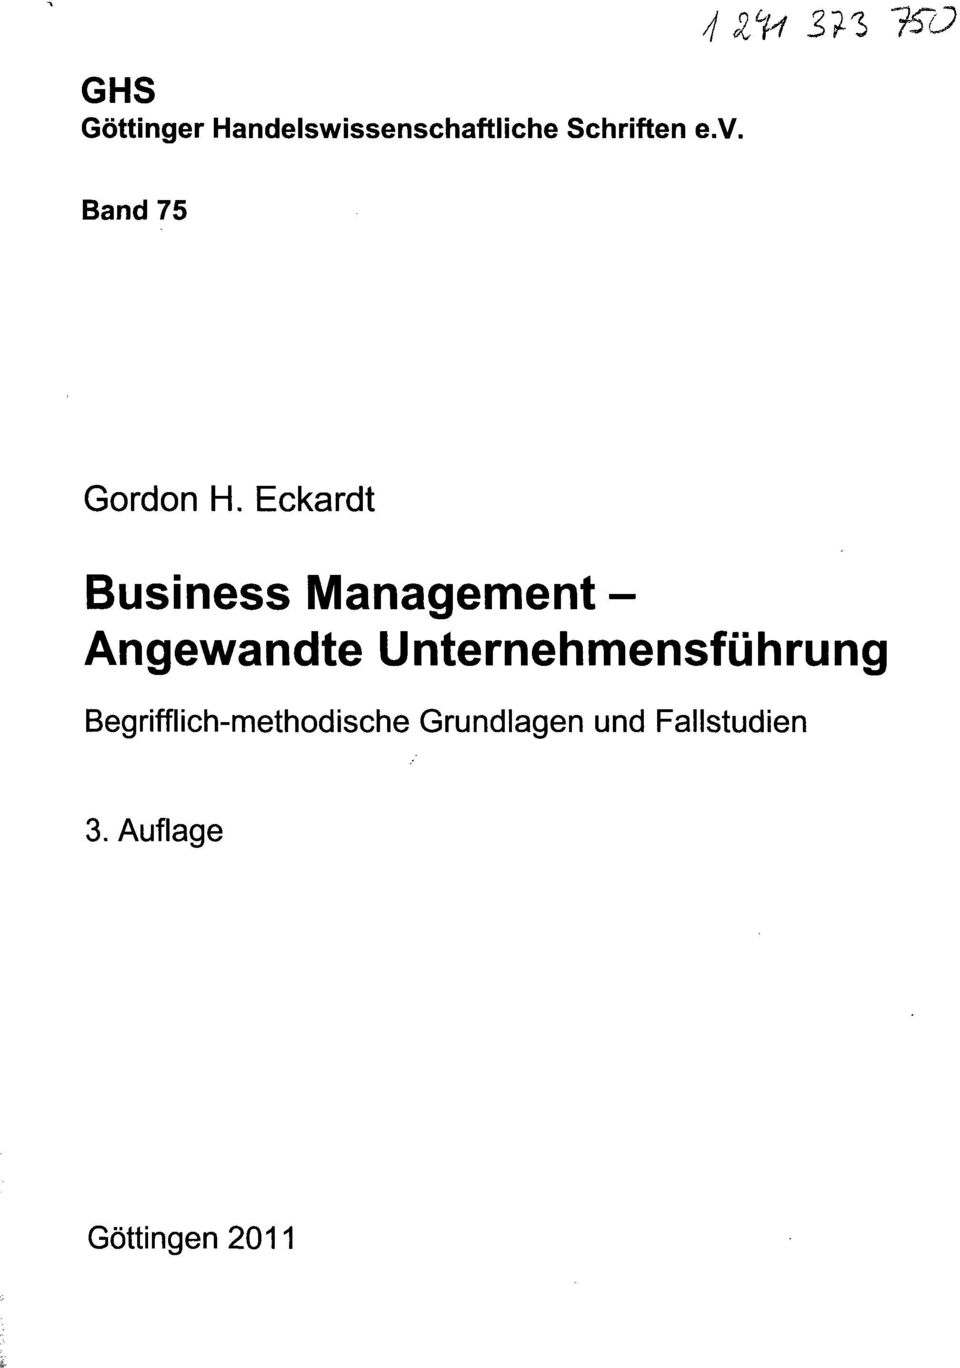 Eckardt Business Management - Angewandte